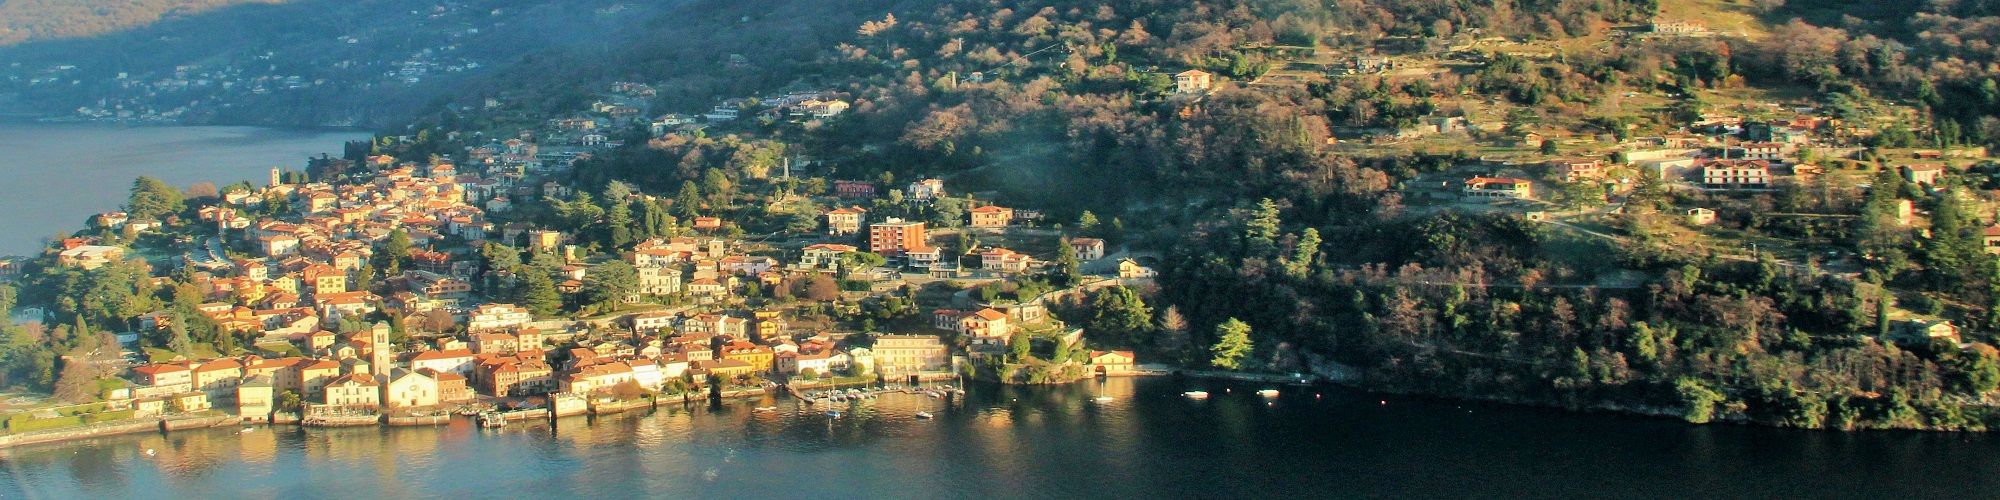 Luxury Italy - Lake of Como